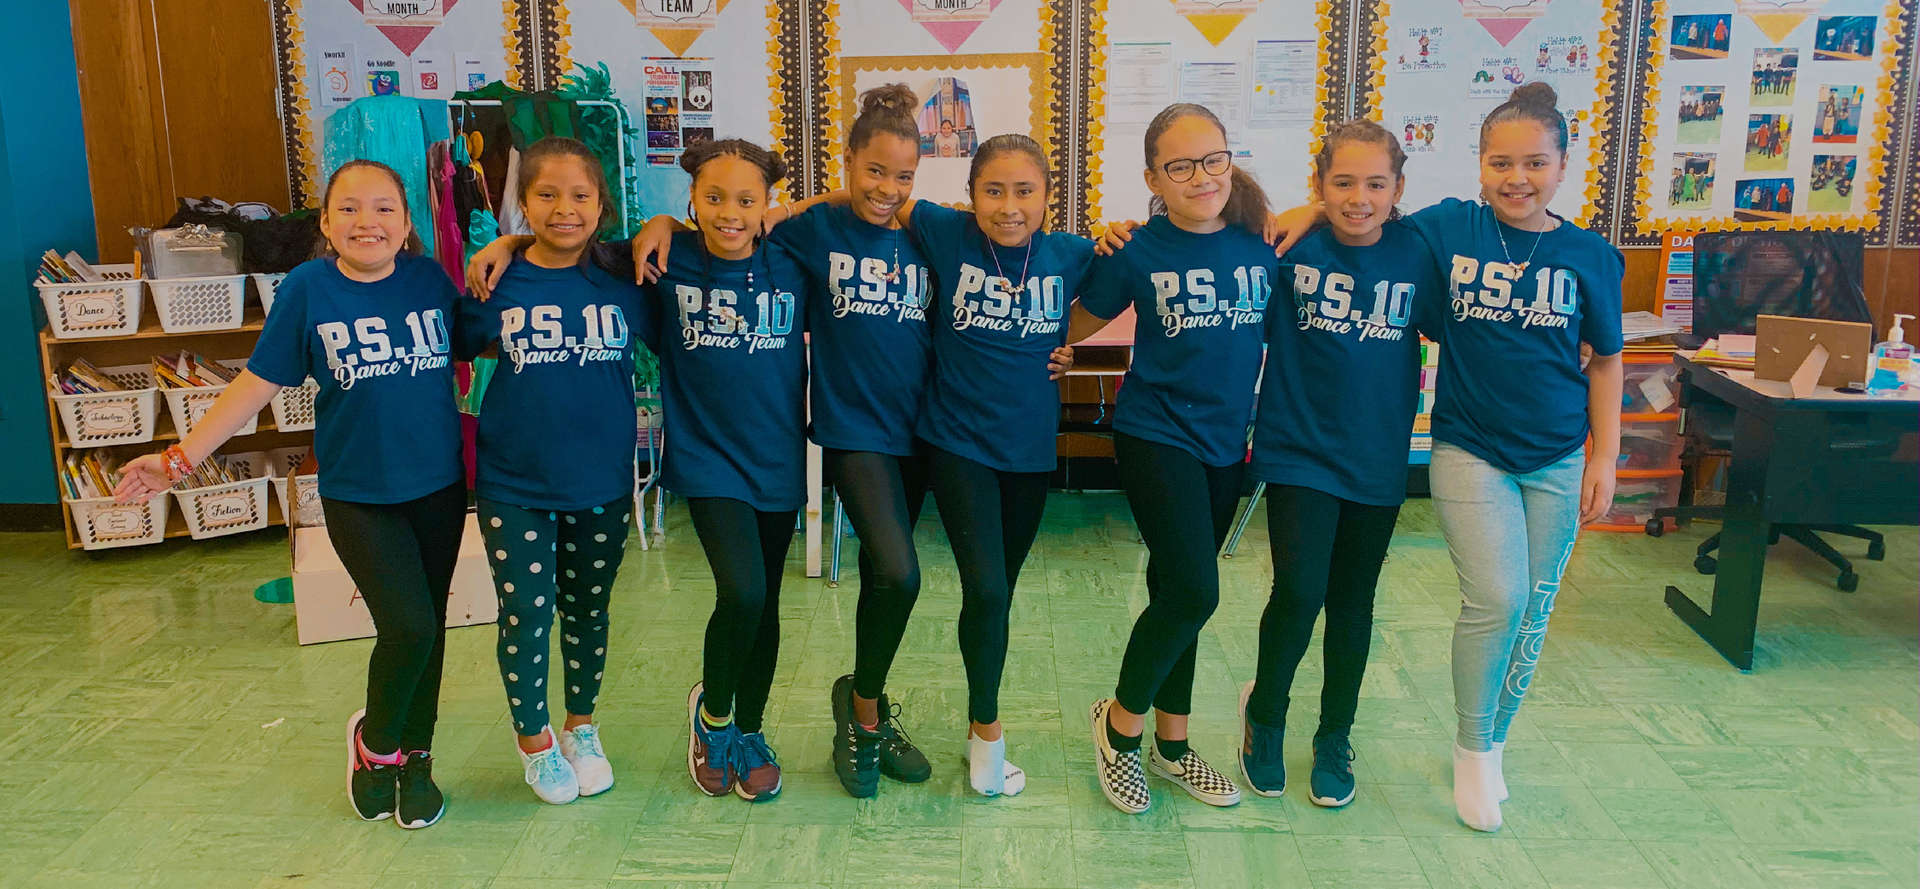 Members of the P.S. 10 dance team